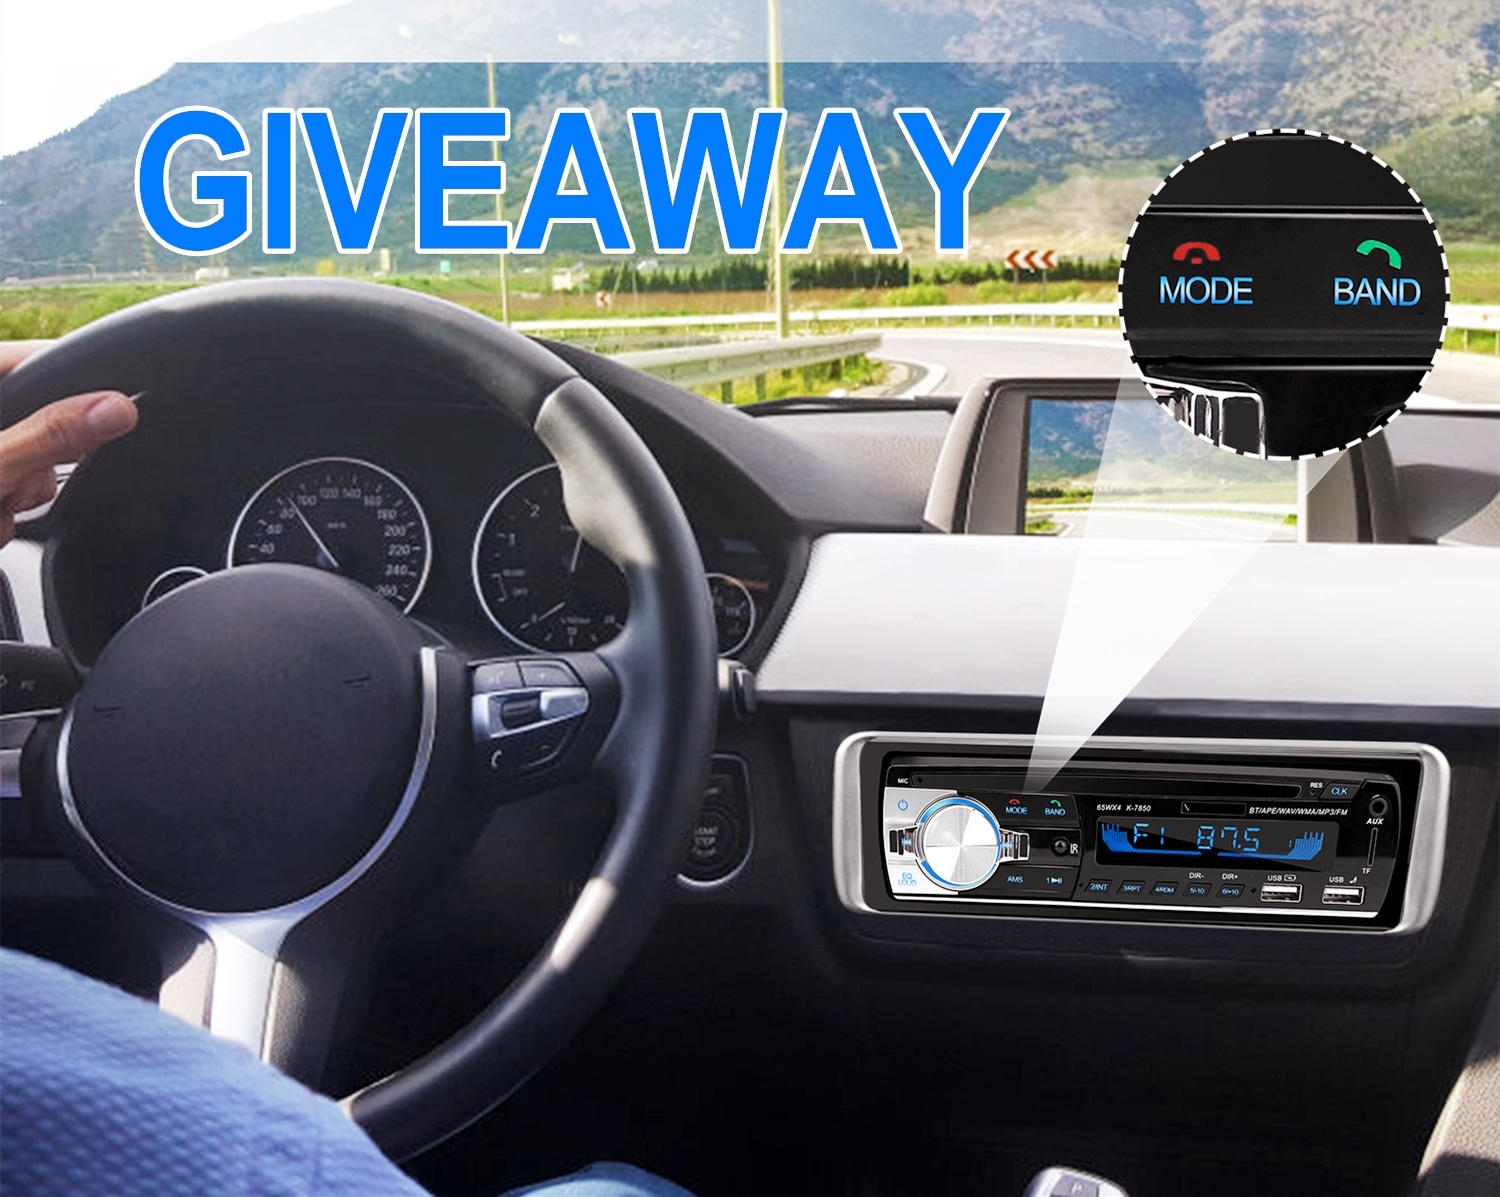 WIN A CAR RADIO Giveaway Image